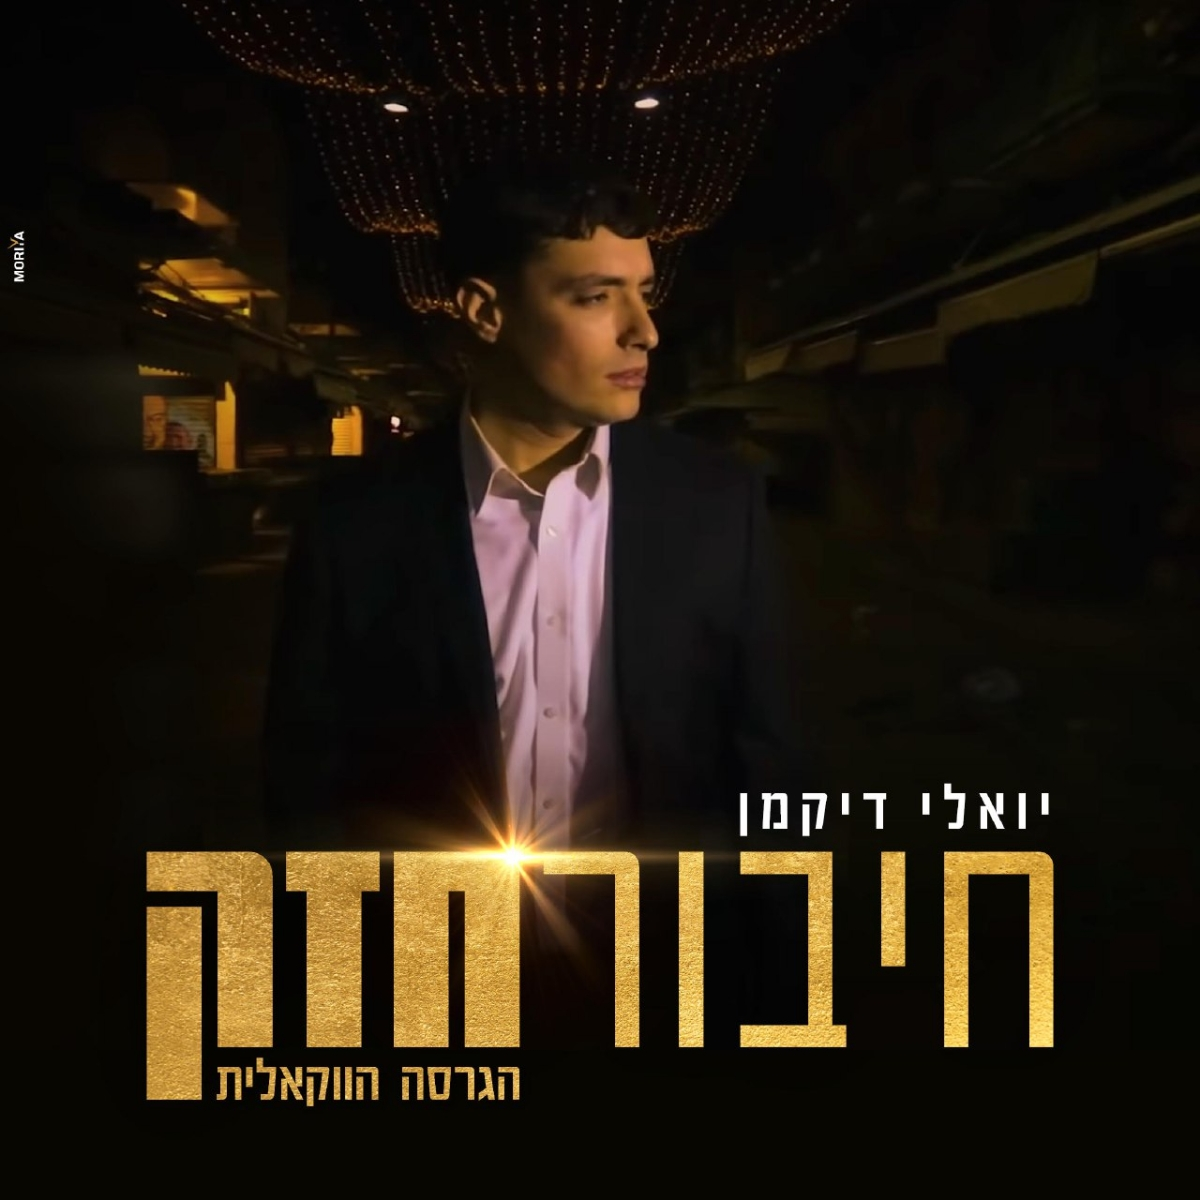 """Yoeli Dikman With A Vocal Version Of His Song """"Chibur Chazak"""""""